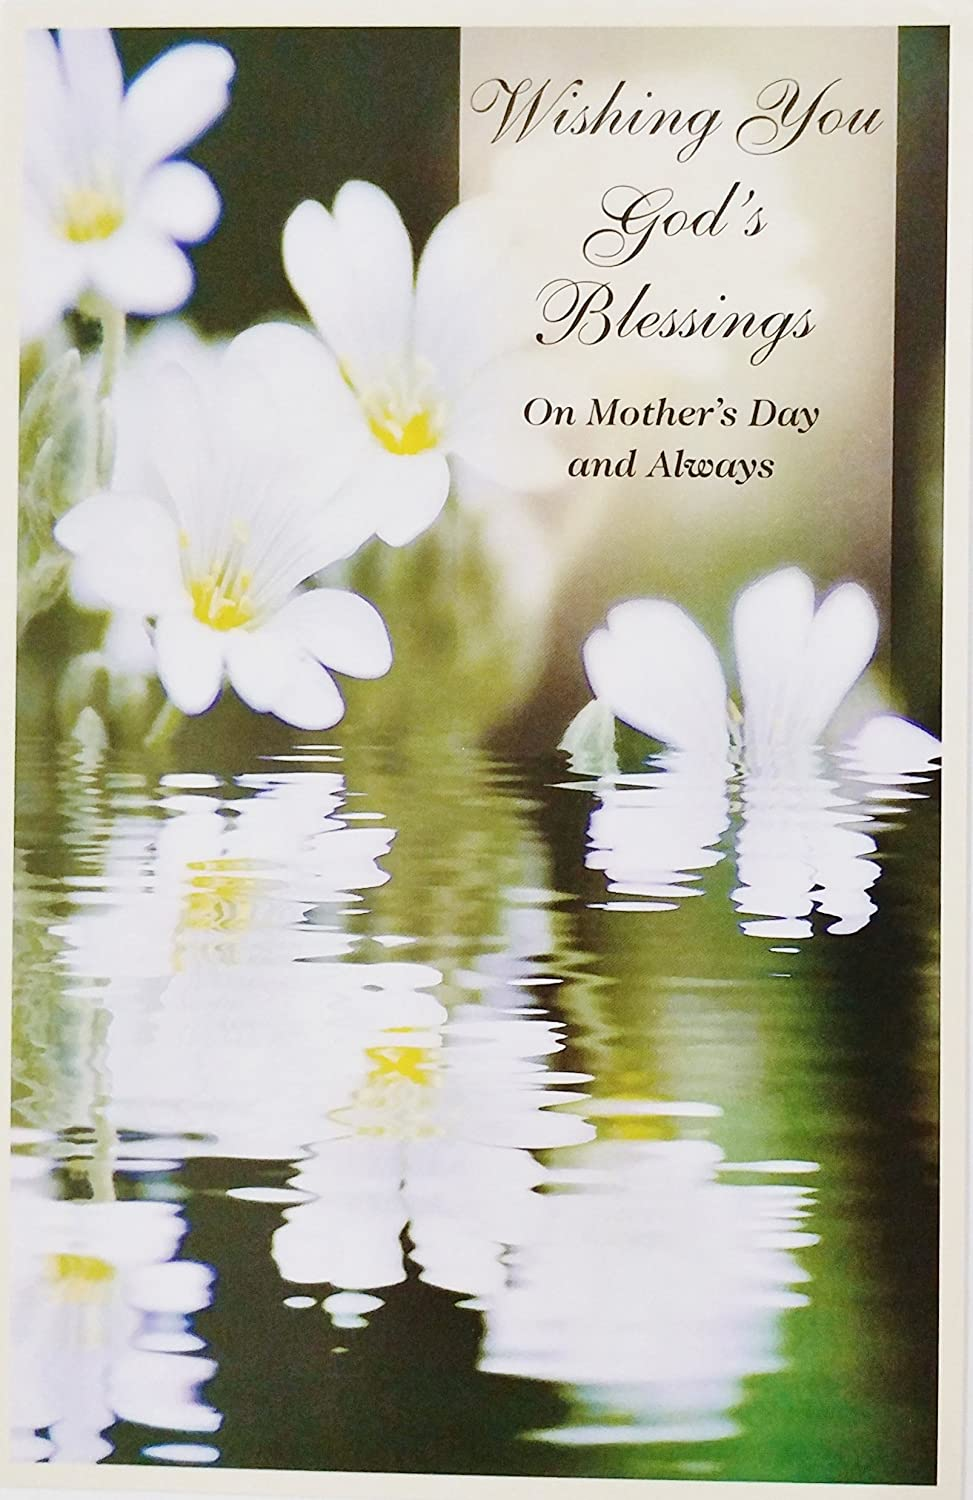 Amazon Com Wishing You God S Blessings On Mother S Day Religious Greeting Card With Thoughts Of You Office Products